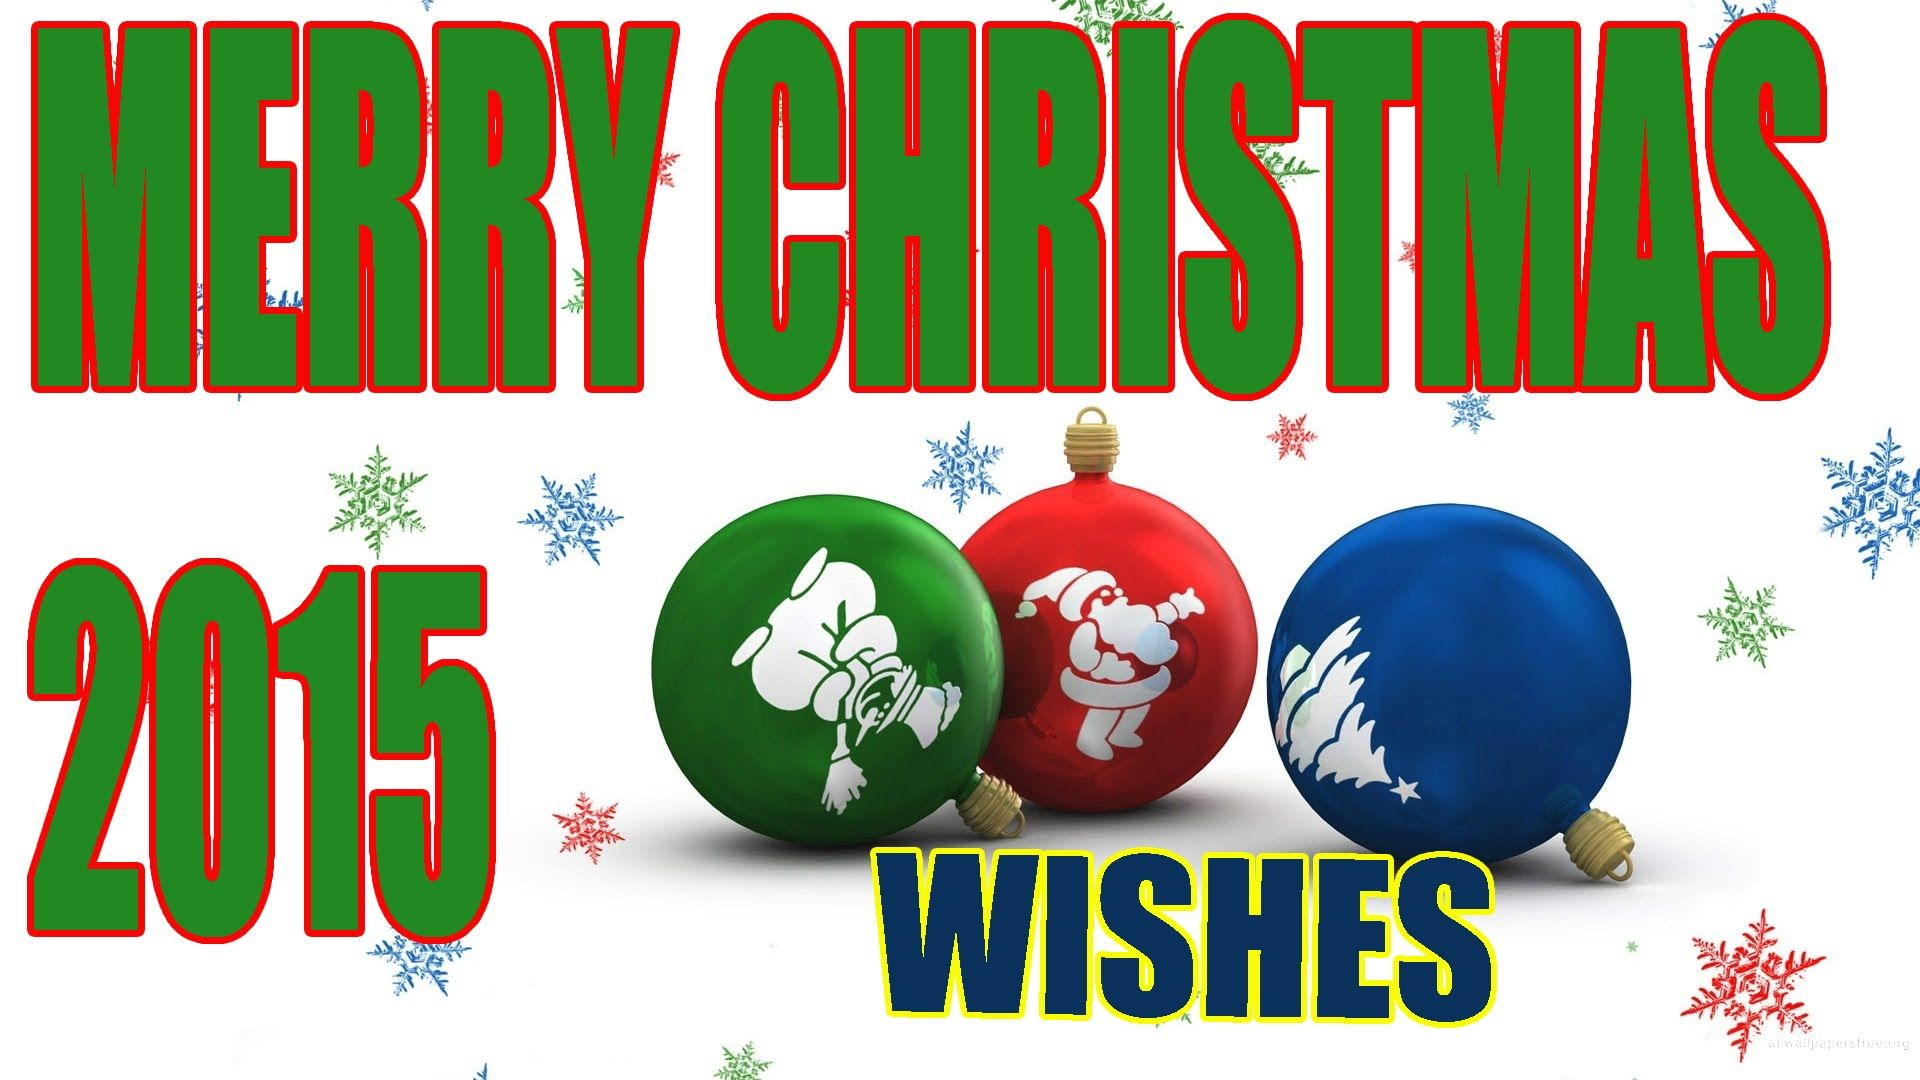 Merry Christmas Greetings For Facebook Whatsapp And Google Plus